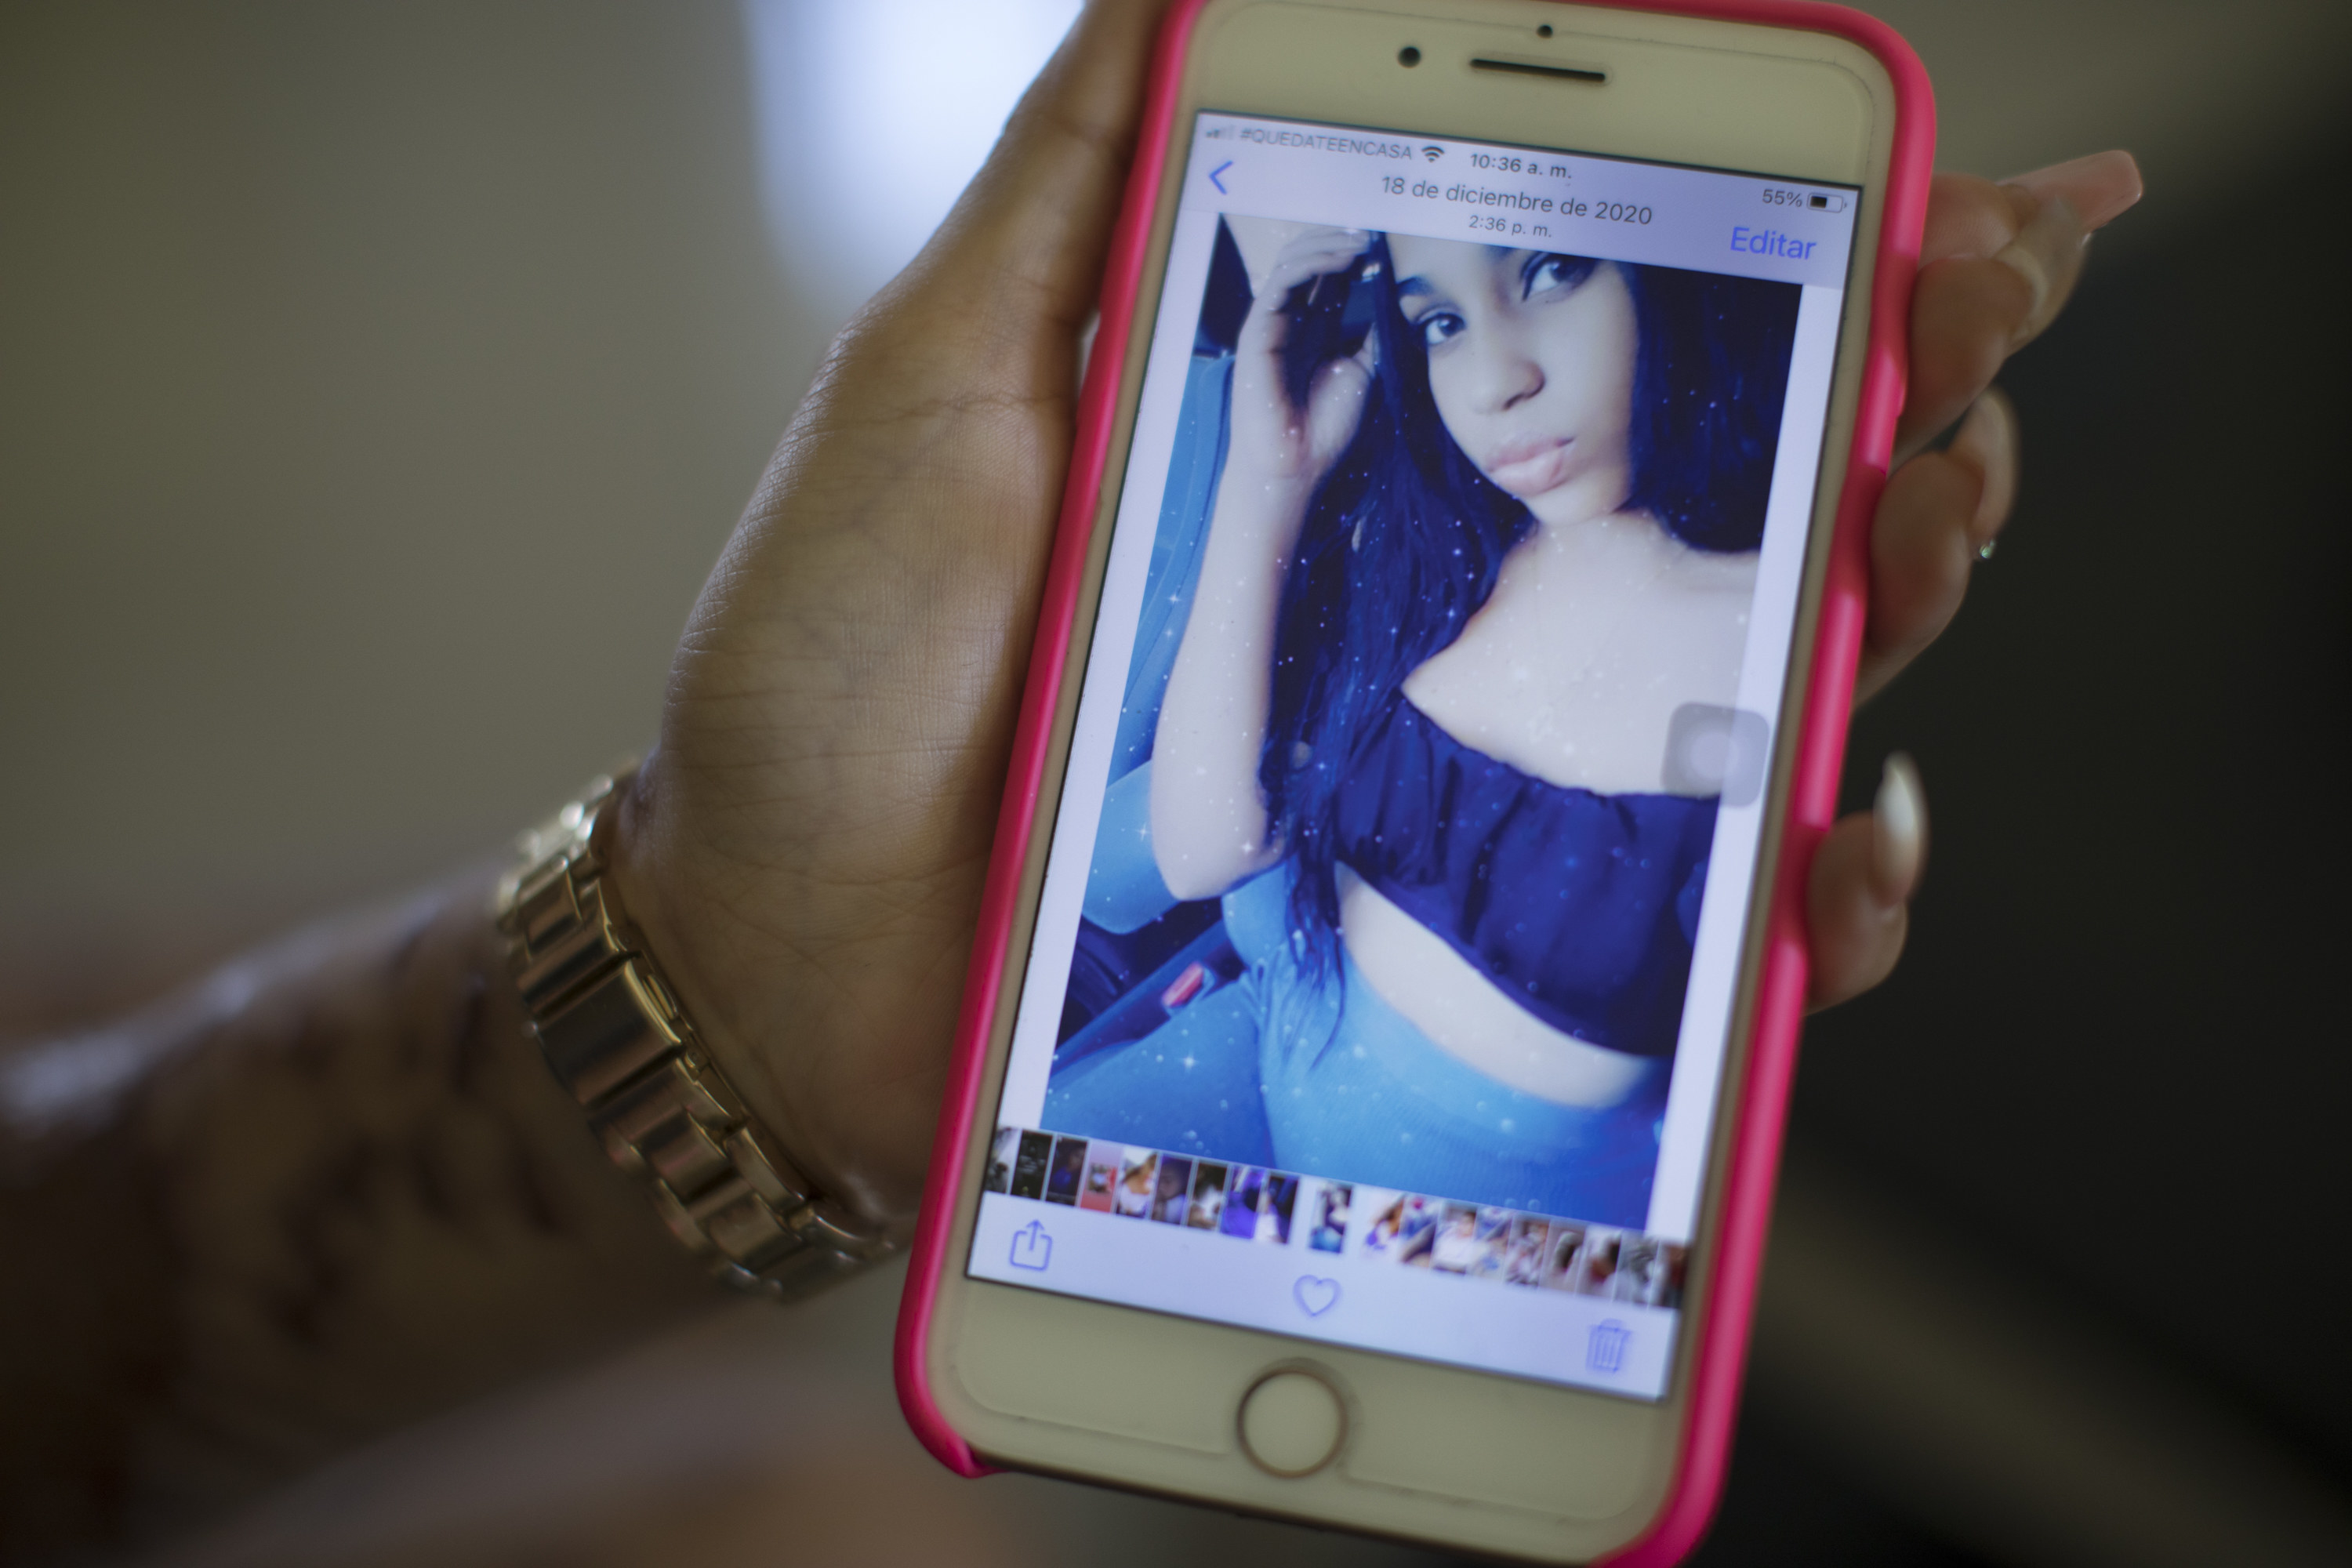 A hand holds up an iPhone, showing a young woman's selfie on the screen